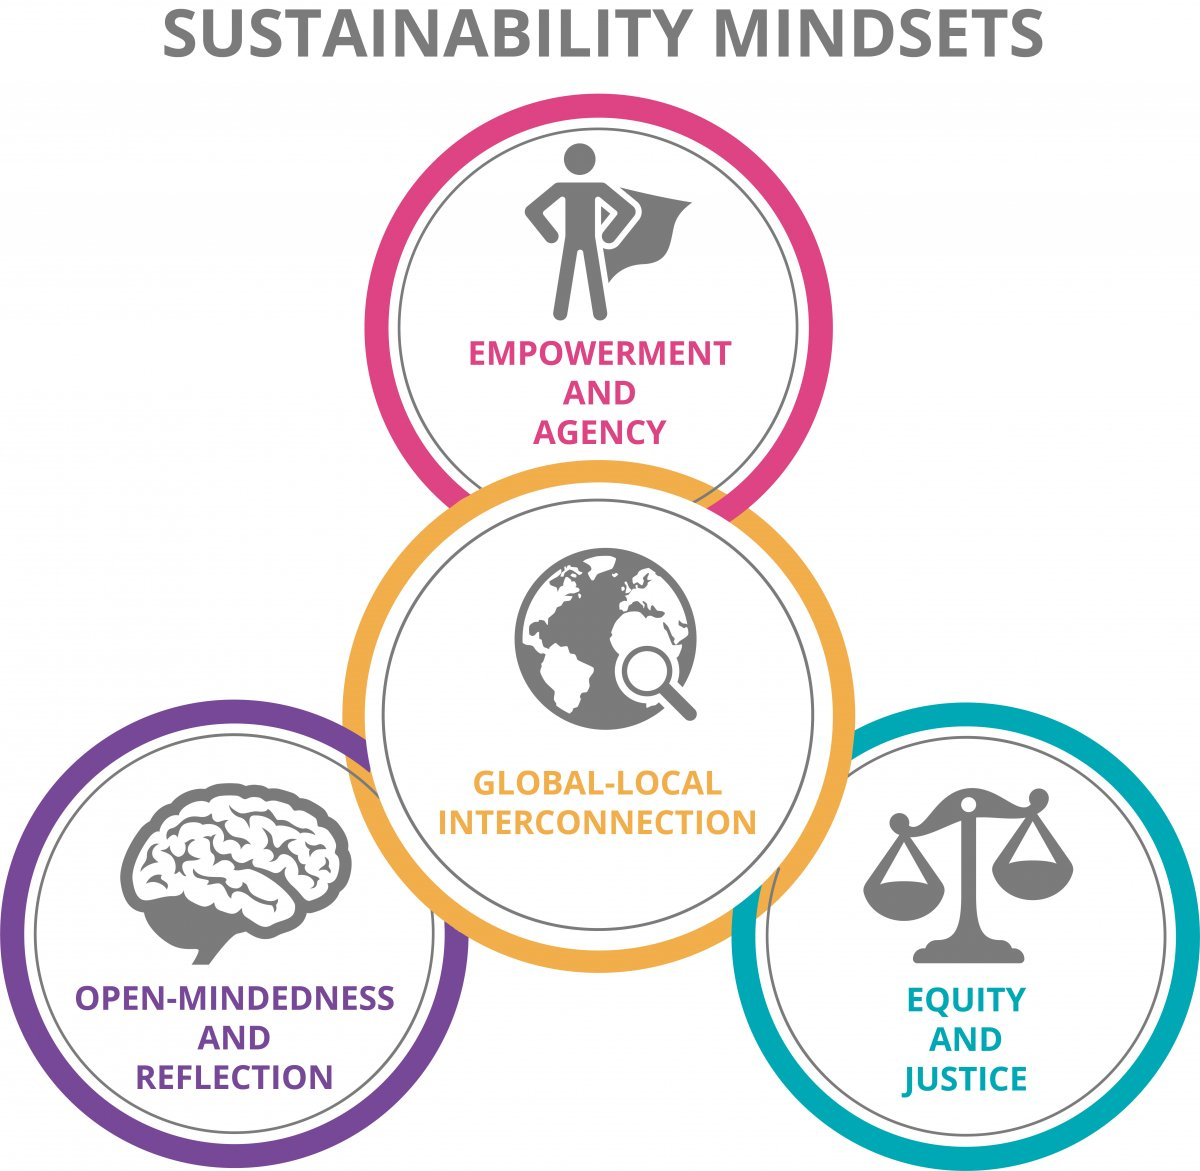 Image of sustainable mindsets